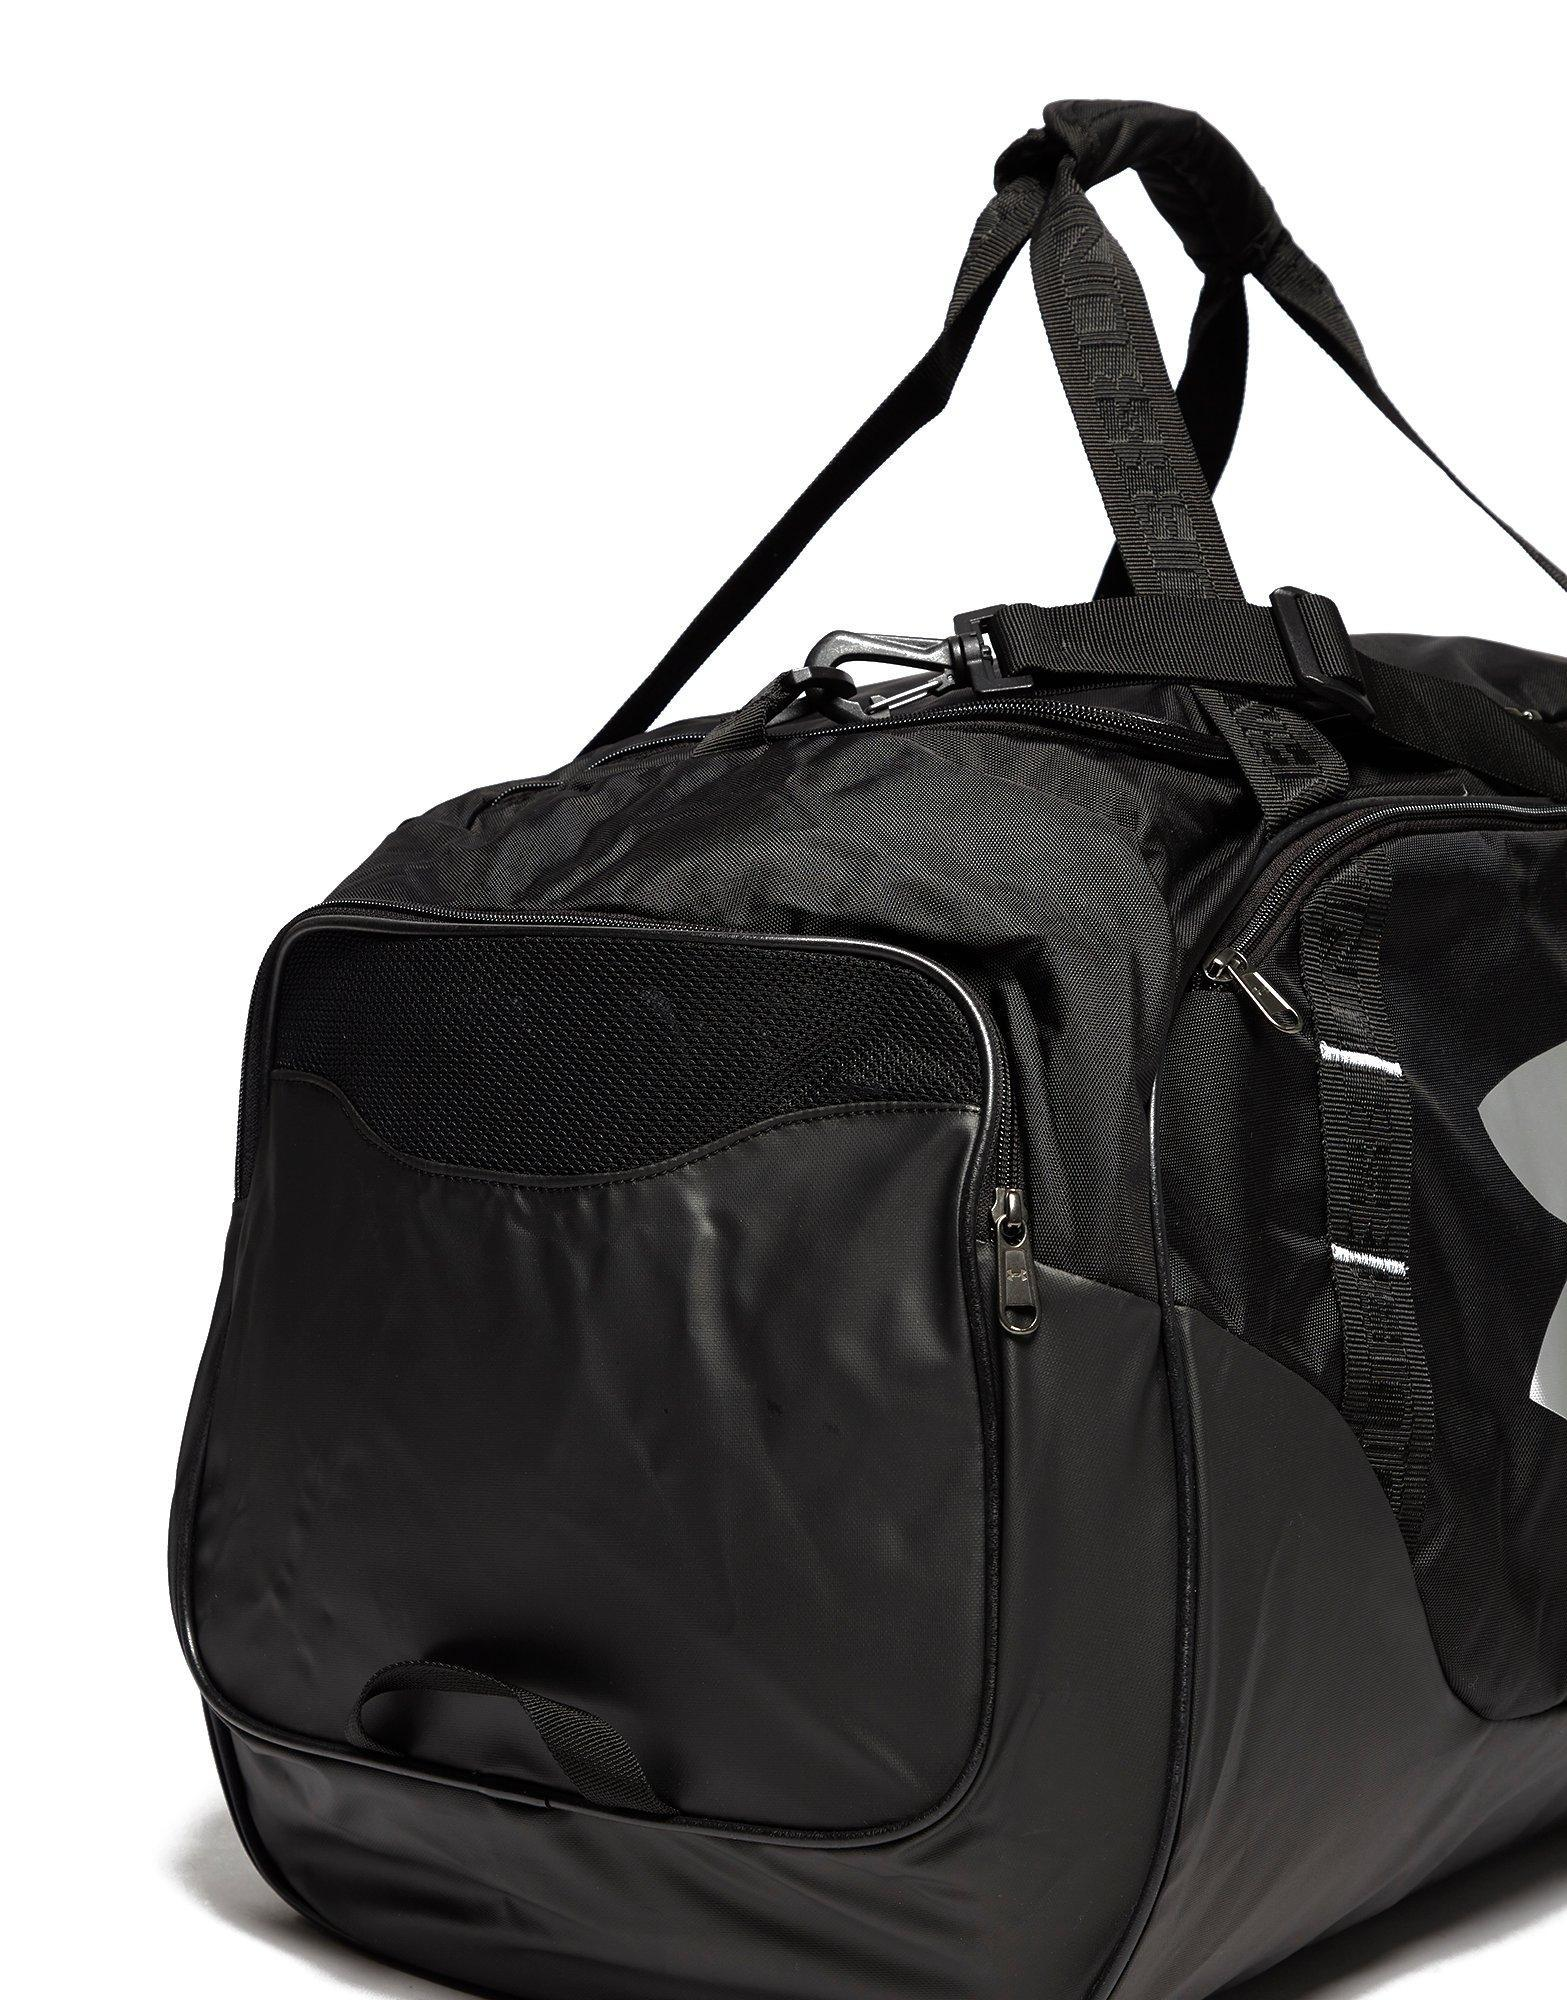 40740388785d Lyst - Under Armour Undeniable Large Duffle Bag in Black for Men